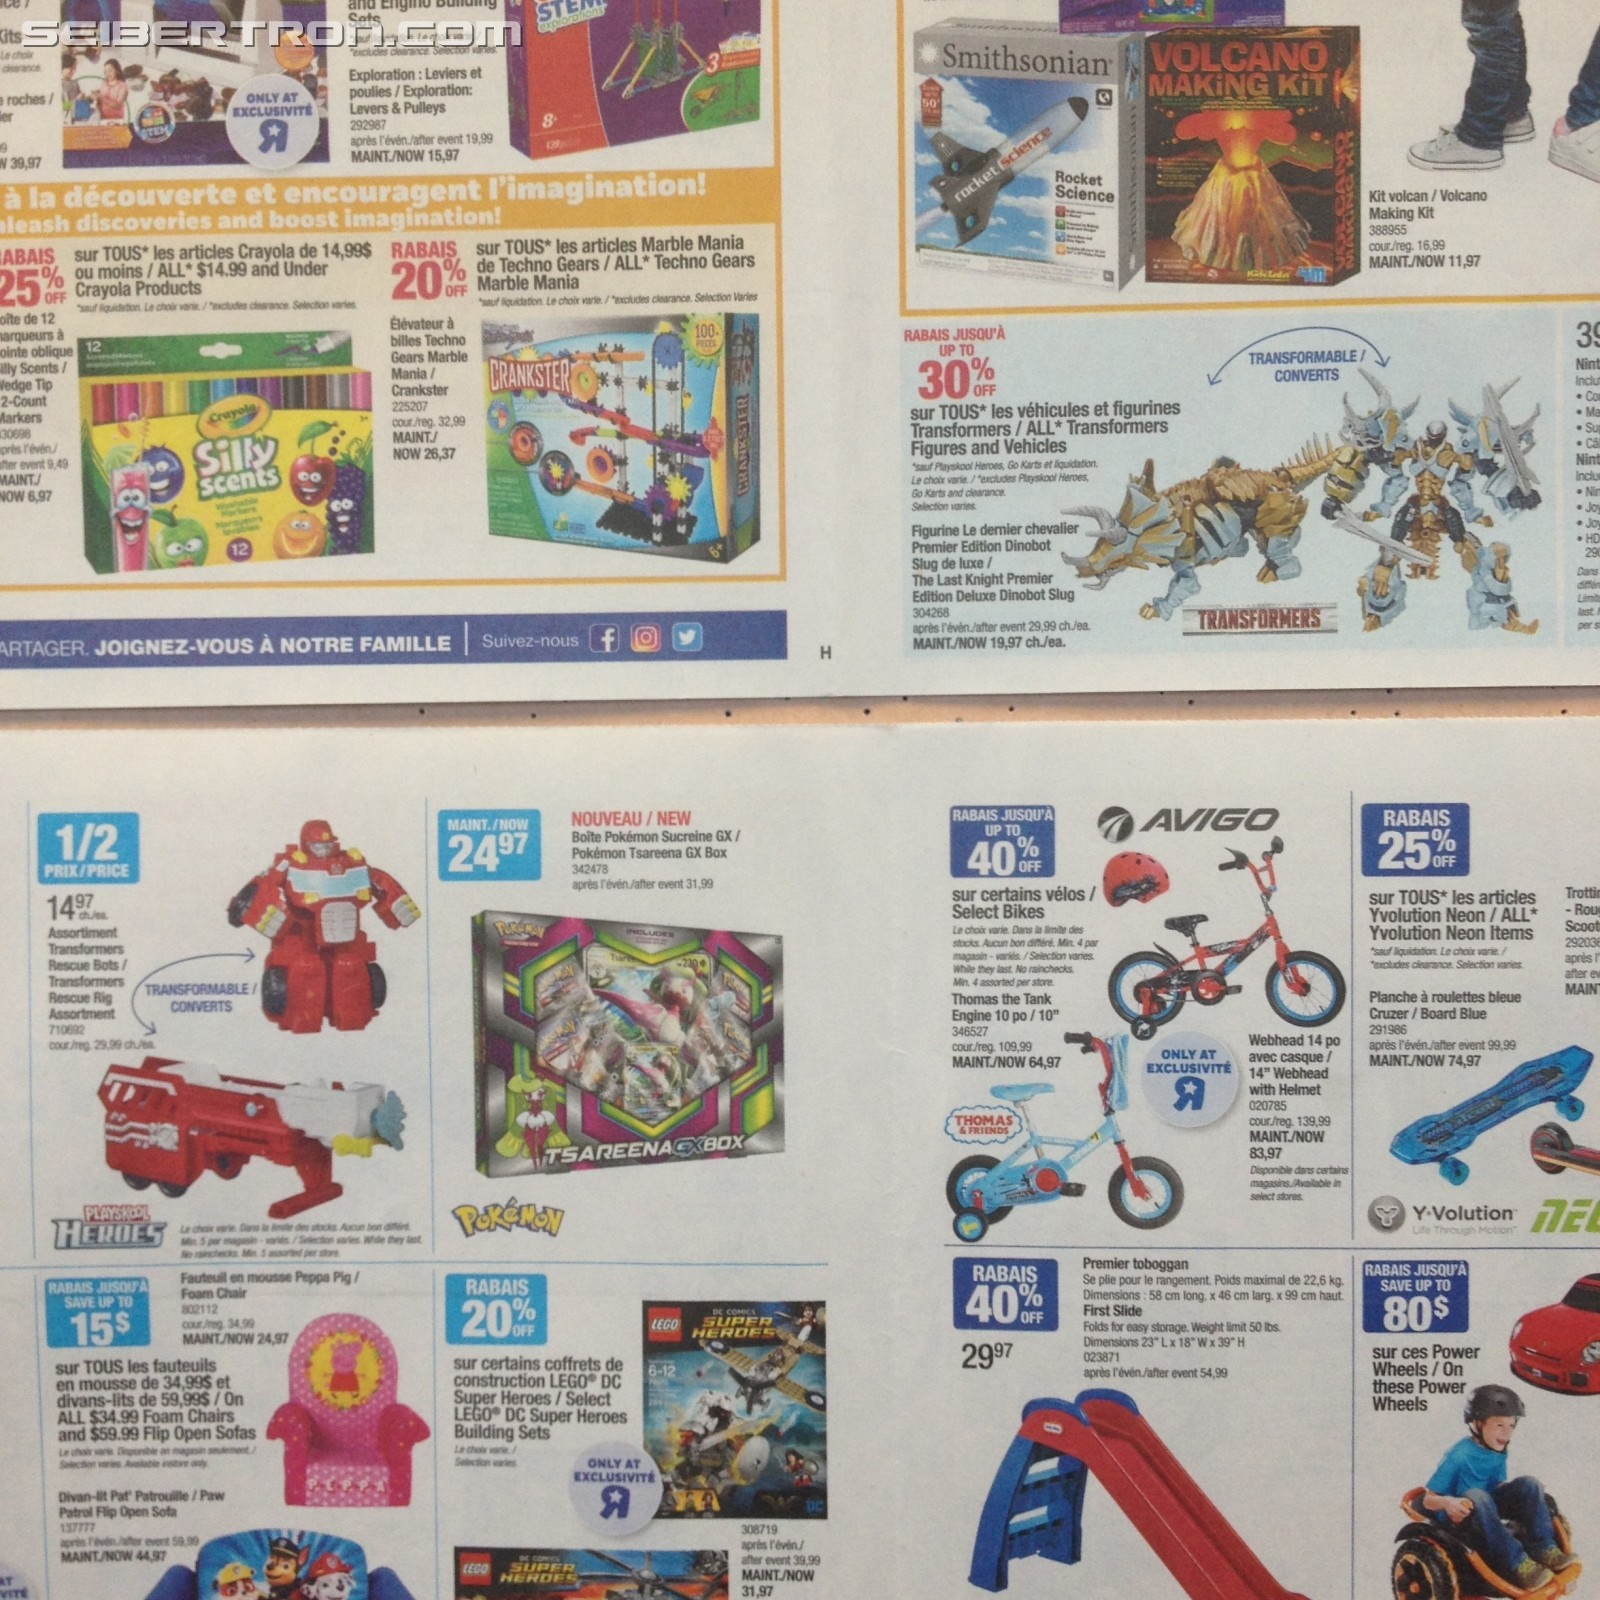 Transformers News: Up to 30% off on Transformers this Week at Toysrus Canada